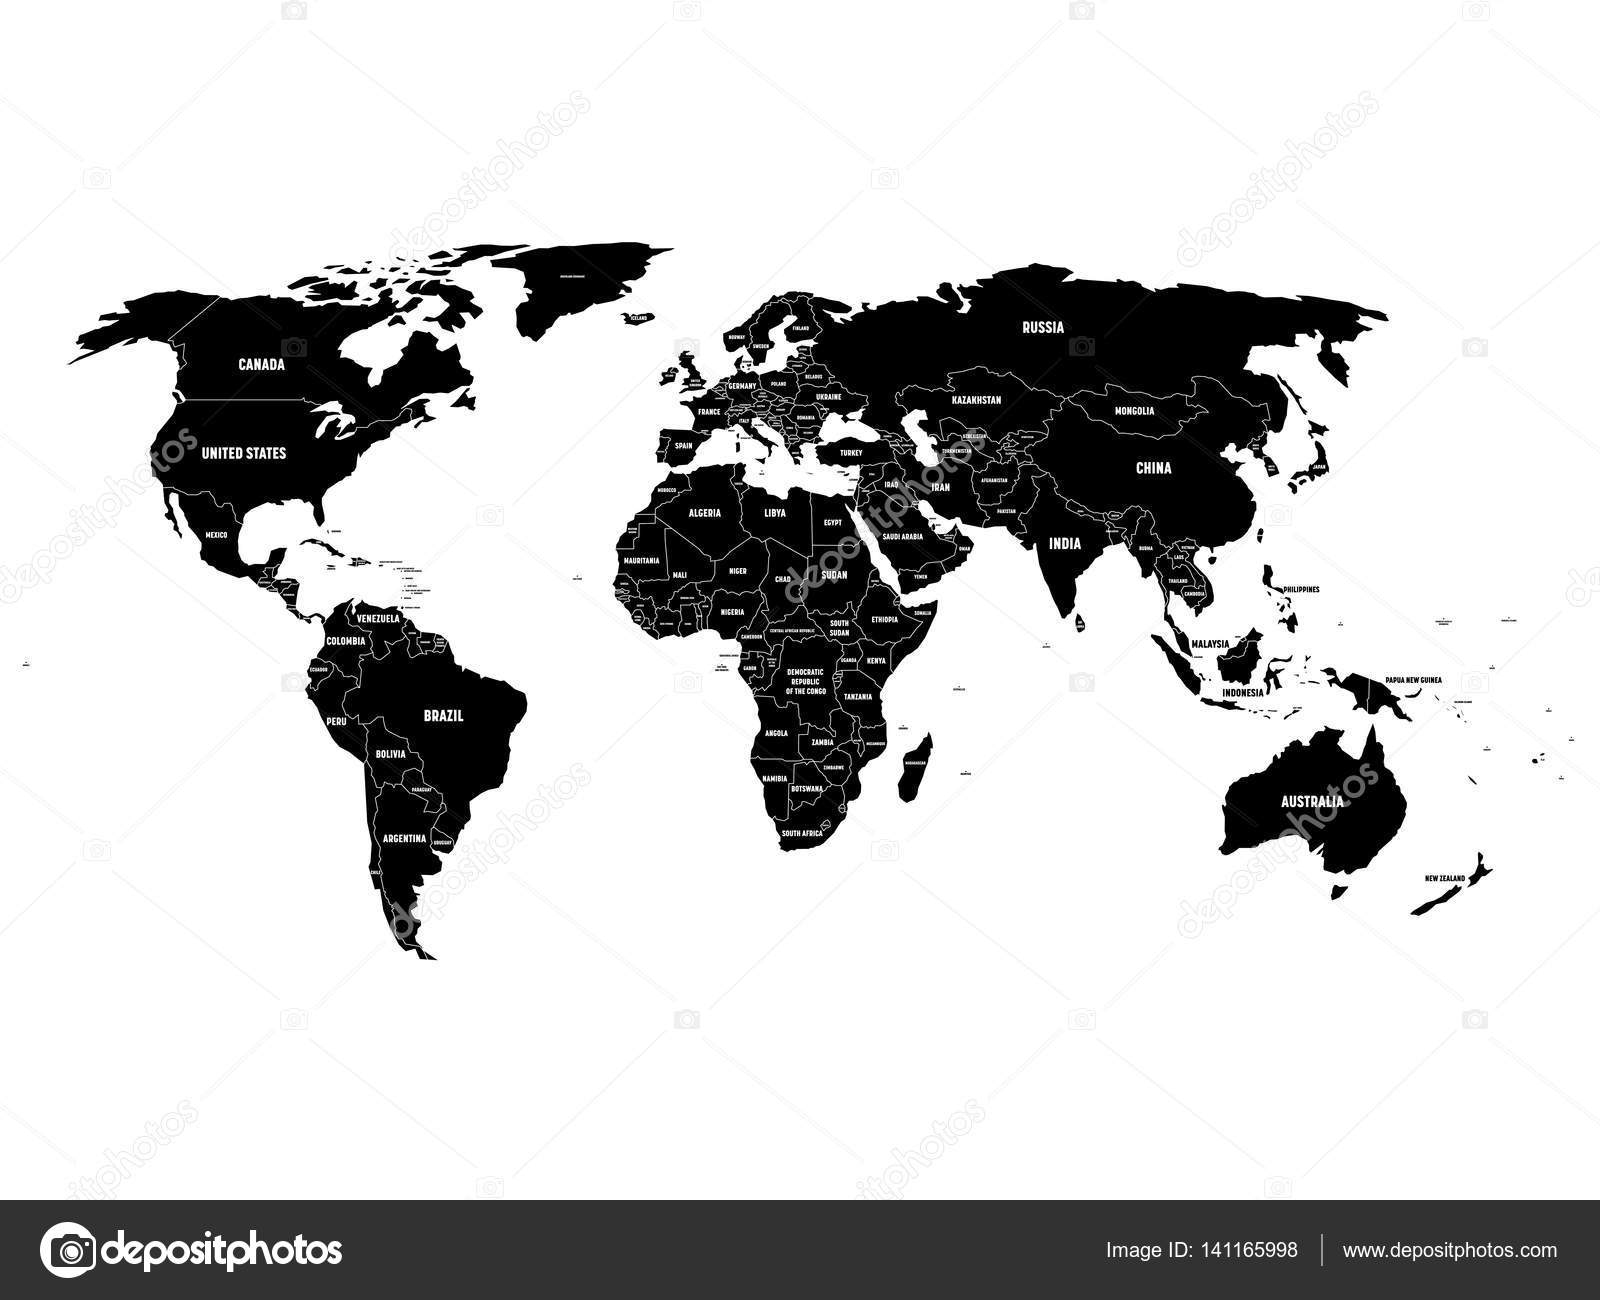 Black political world map with country borders and white state name black political world map with country borders and white state name labels hand drawn simplified vector illustration vector by pyty gumiabroncs Images